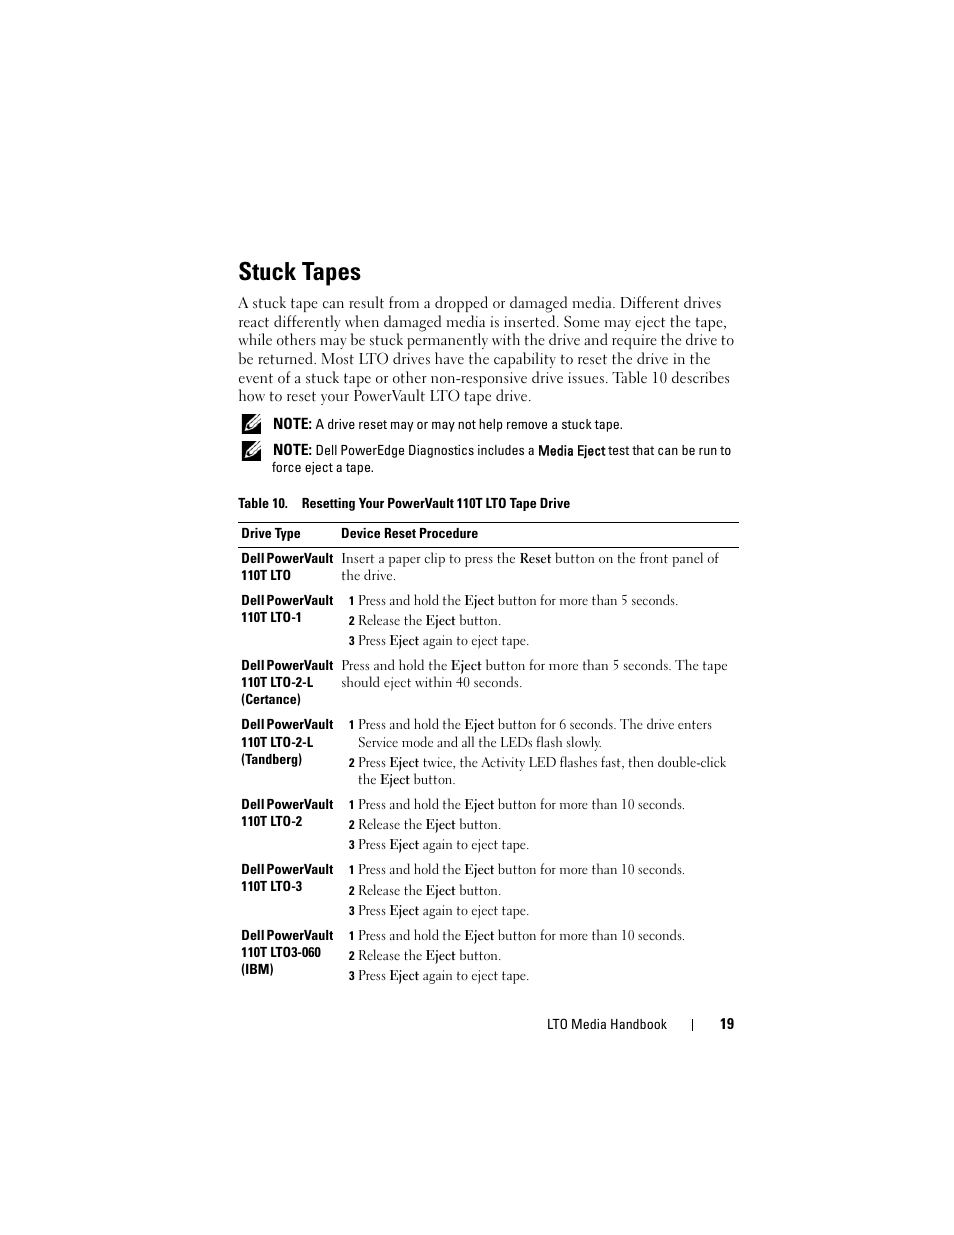 Stuck tapes | Dell PowerVault 124T User Manual | Page 19